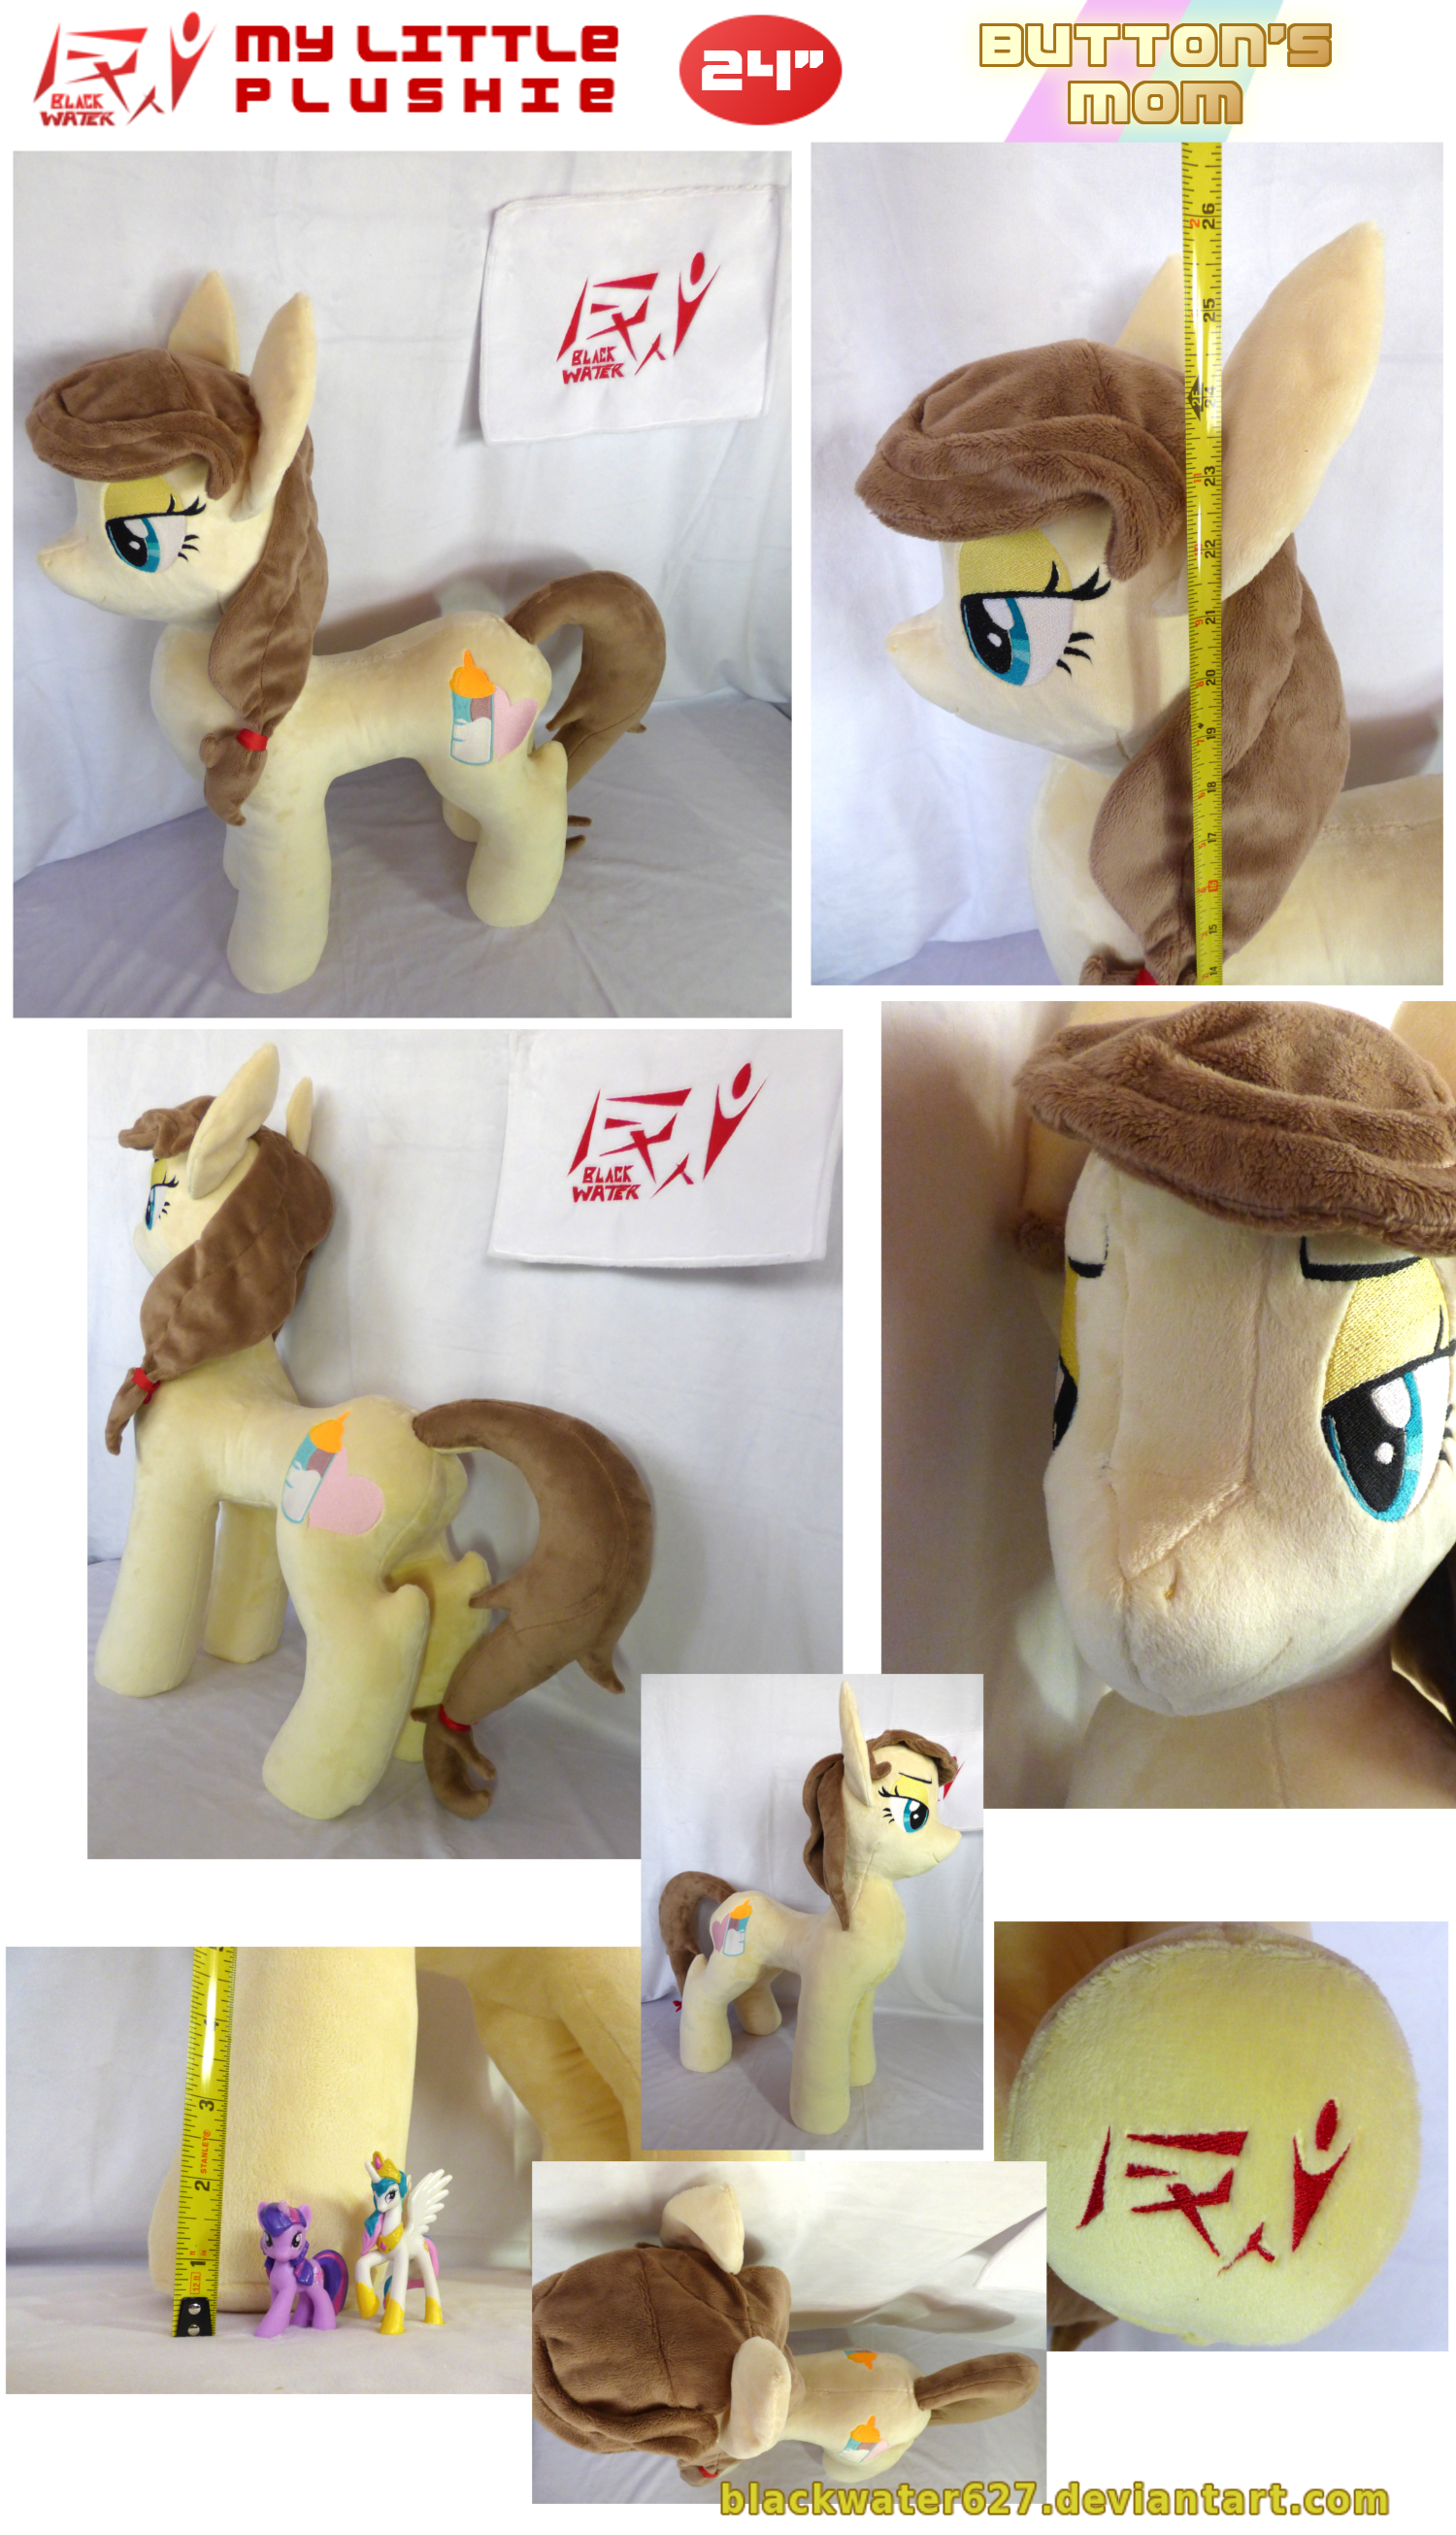 My Little Plushie: Button's Mom